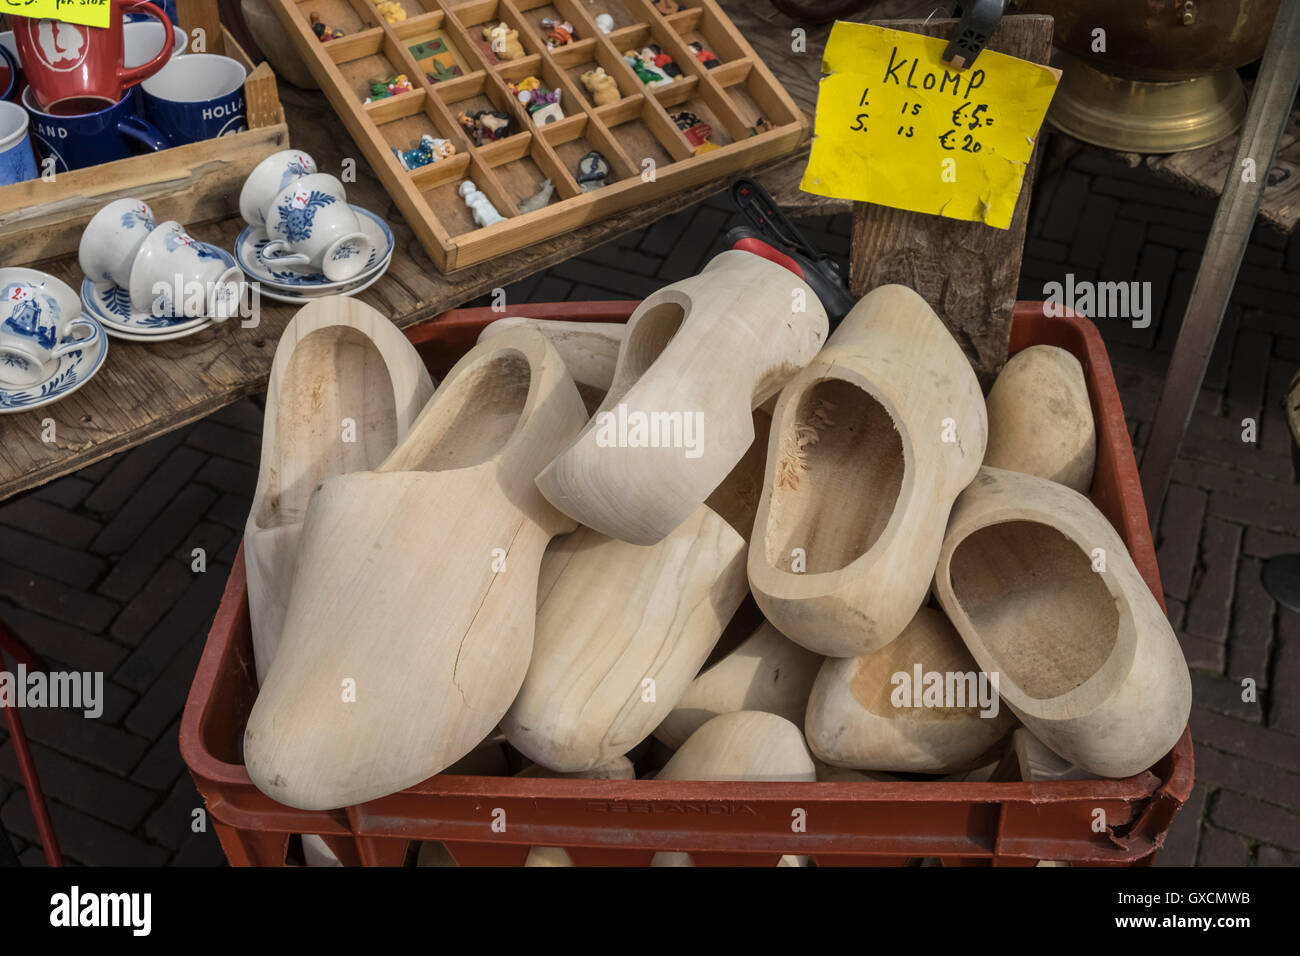 Wooden clog footwear for sale at Waterloopleinmarkt flea market, Amsterdam, Netherlands - Stock Image